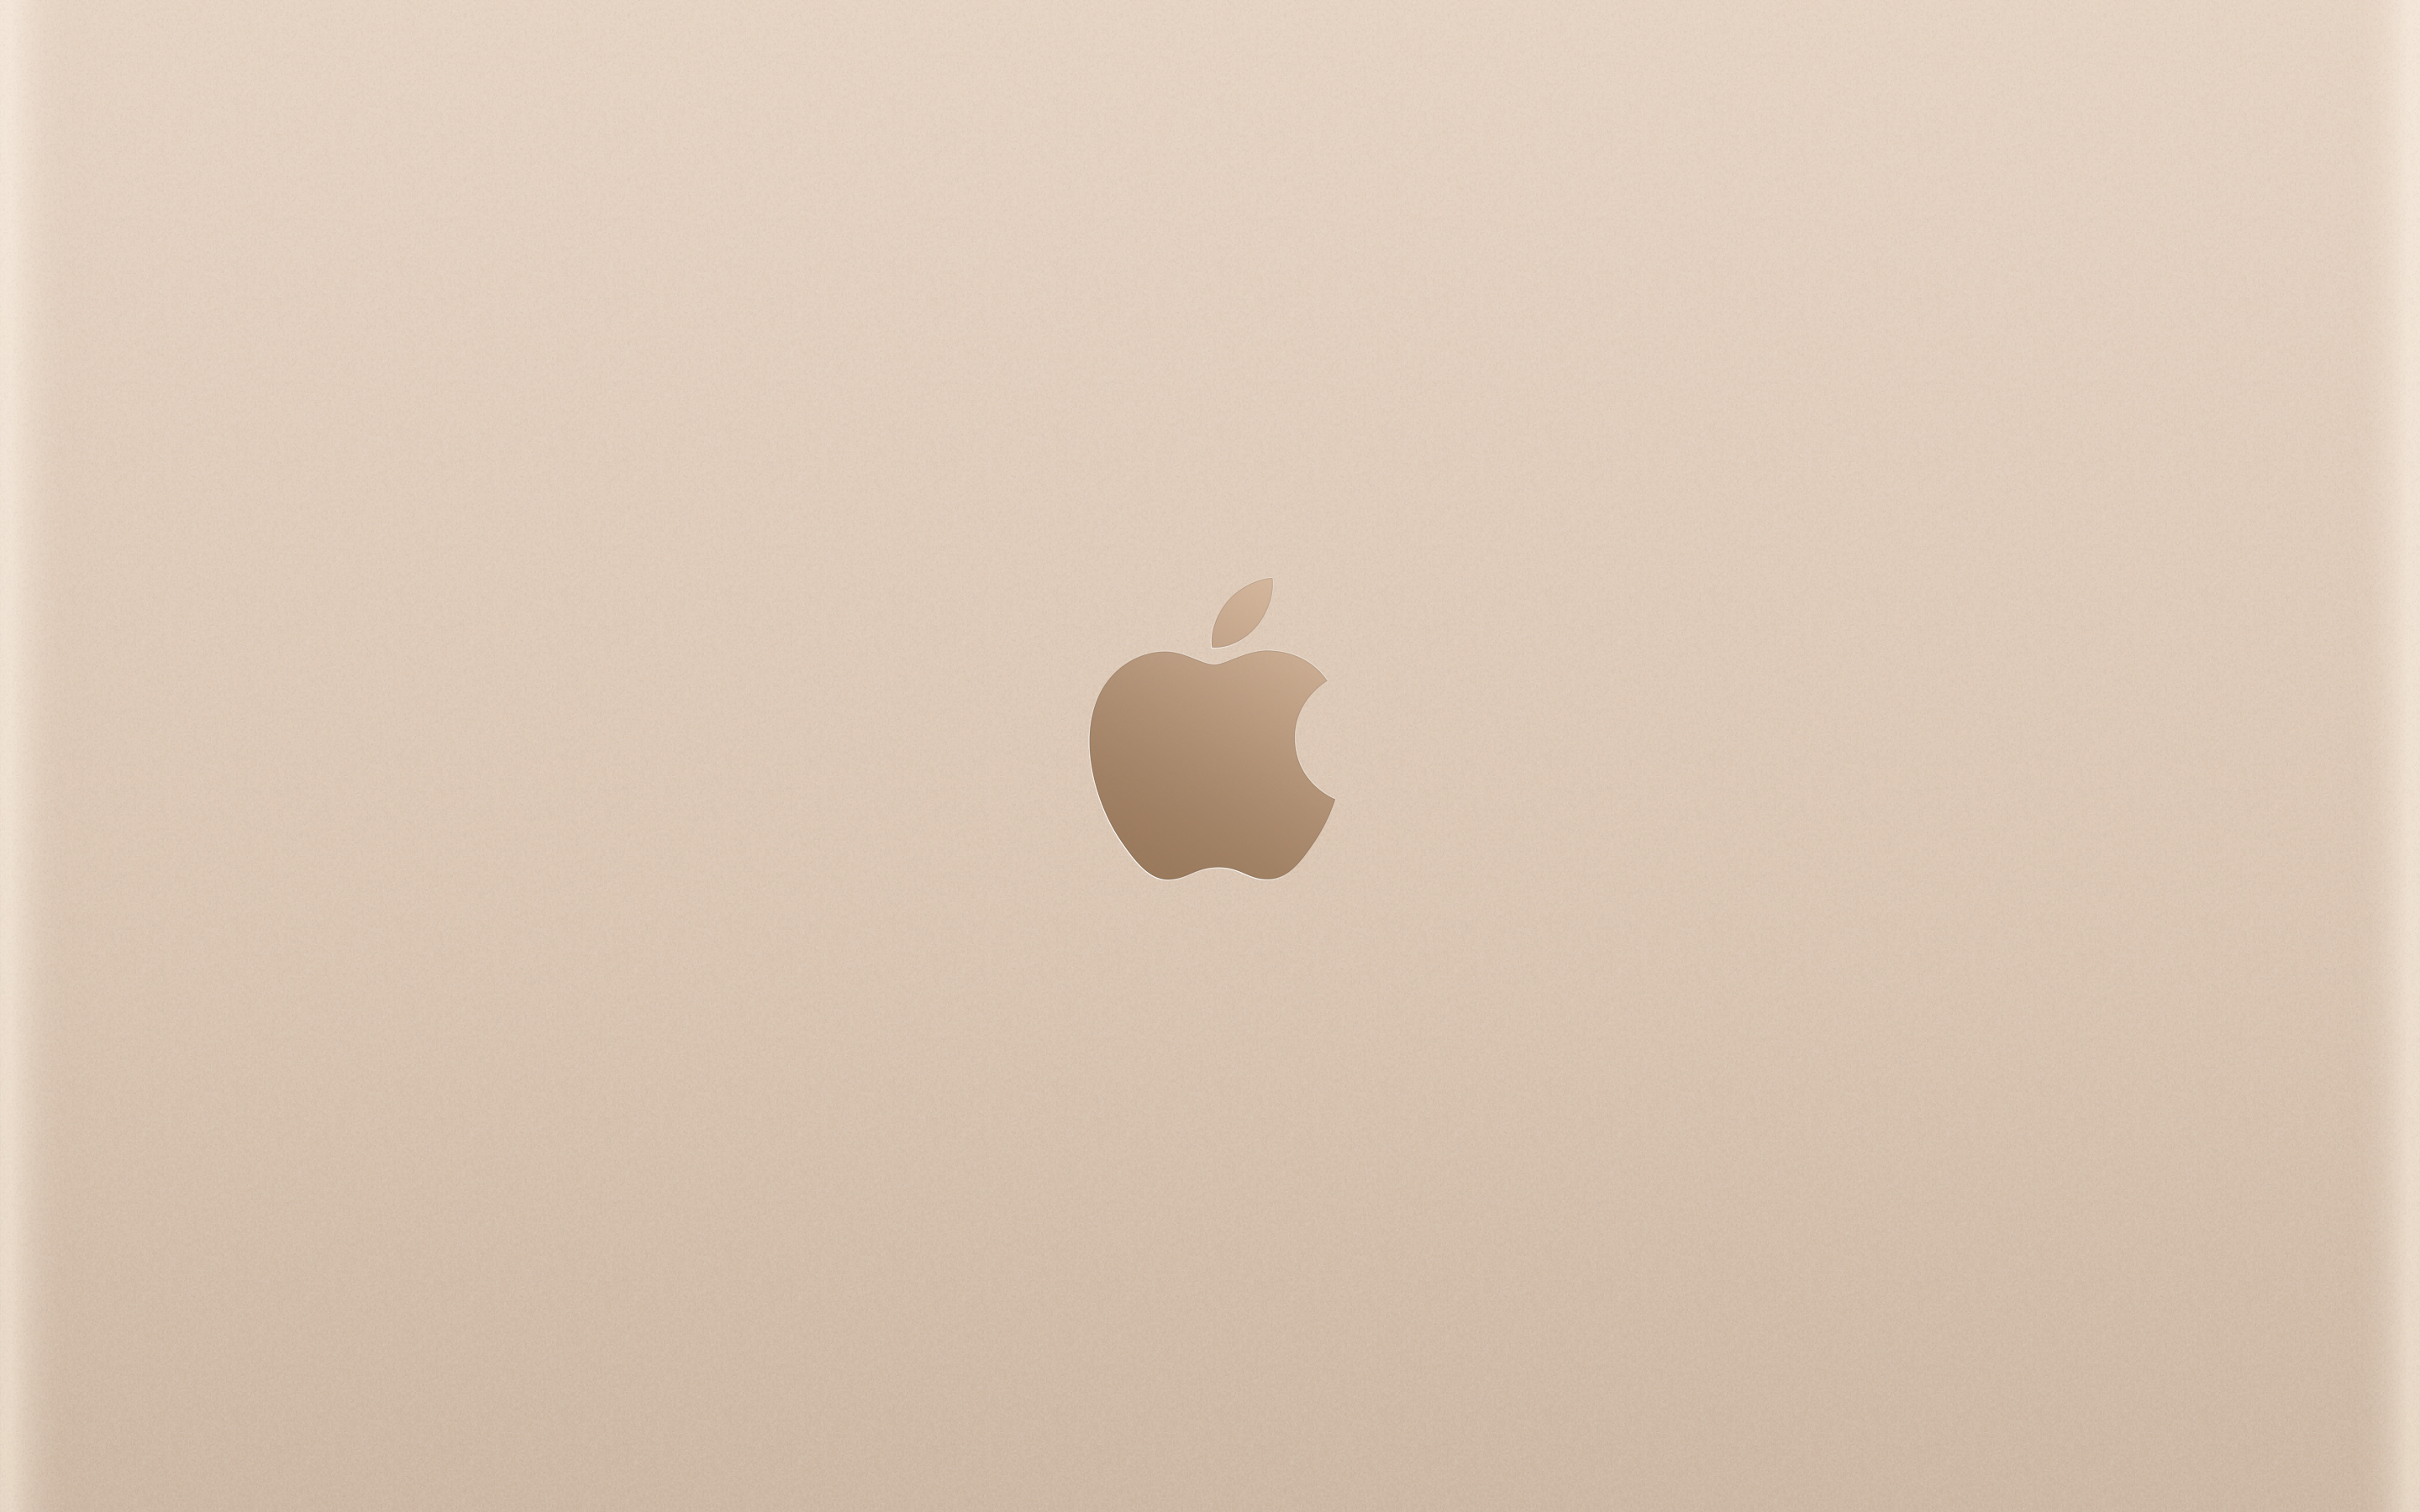 Rose Gold Marble Iphone Wallpaper